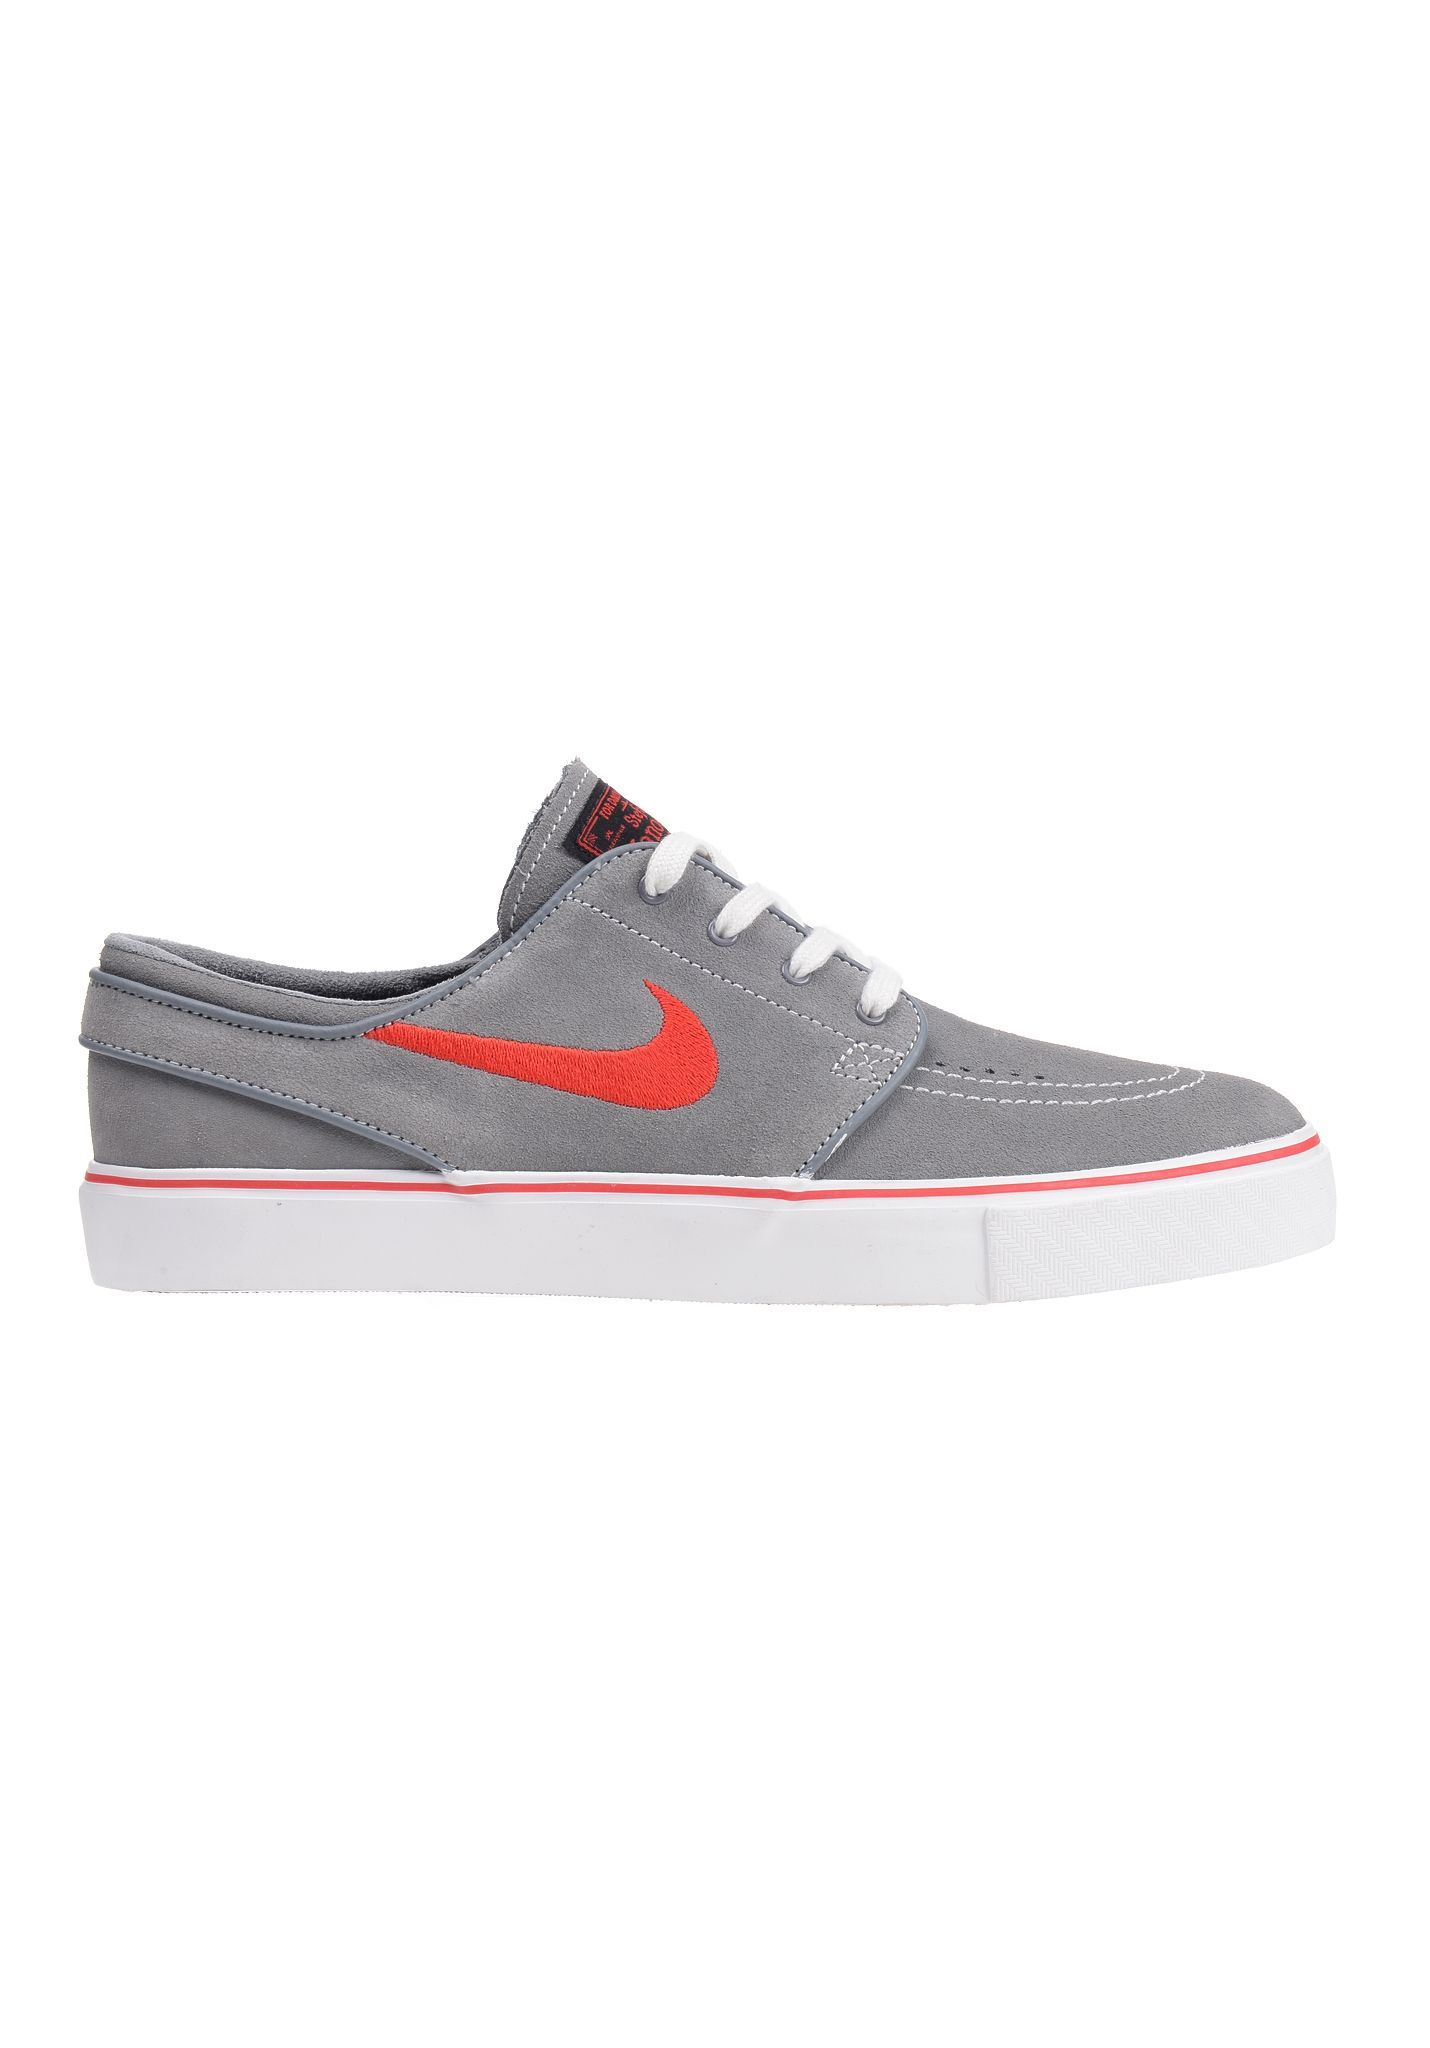 baskets nike nike sb zoom stefan janoski cnvs pour homme vans kangoo. Black Bedroom Furniture Sets. Home Design Ideas